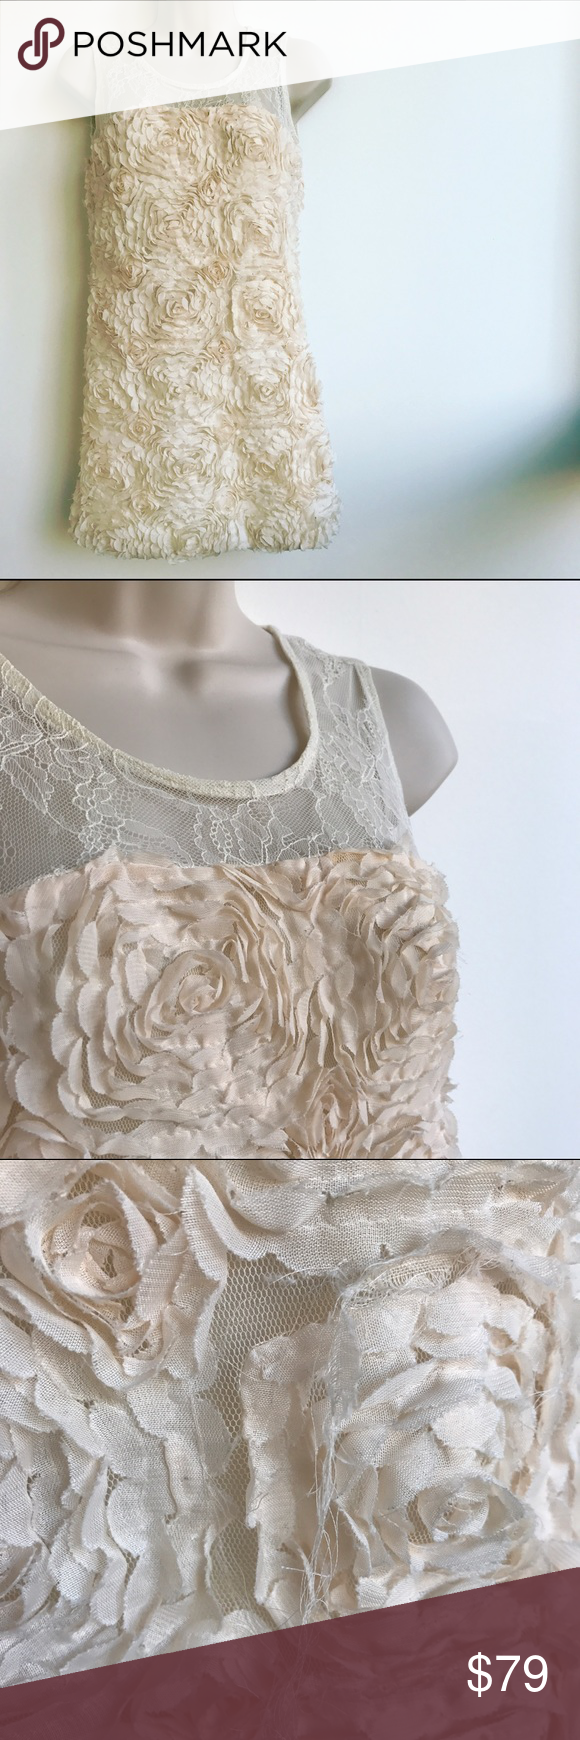 Just Cavalli Ivory Lace and Rosettes Dress This dress makes me think of a destination wedding or a beach honeymoon dress! A small section of the rosettes has a tear that is barely noticeable as it meshes into the pattern mix. Approximate measurements (laid flat): chest, 16